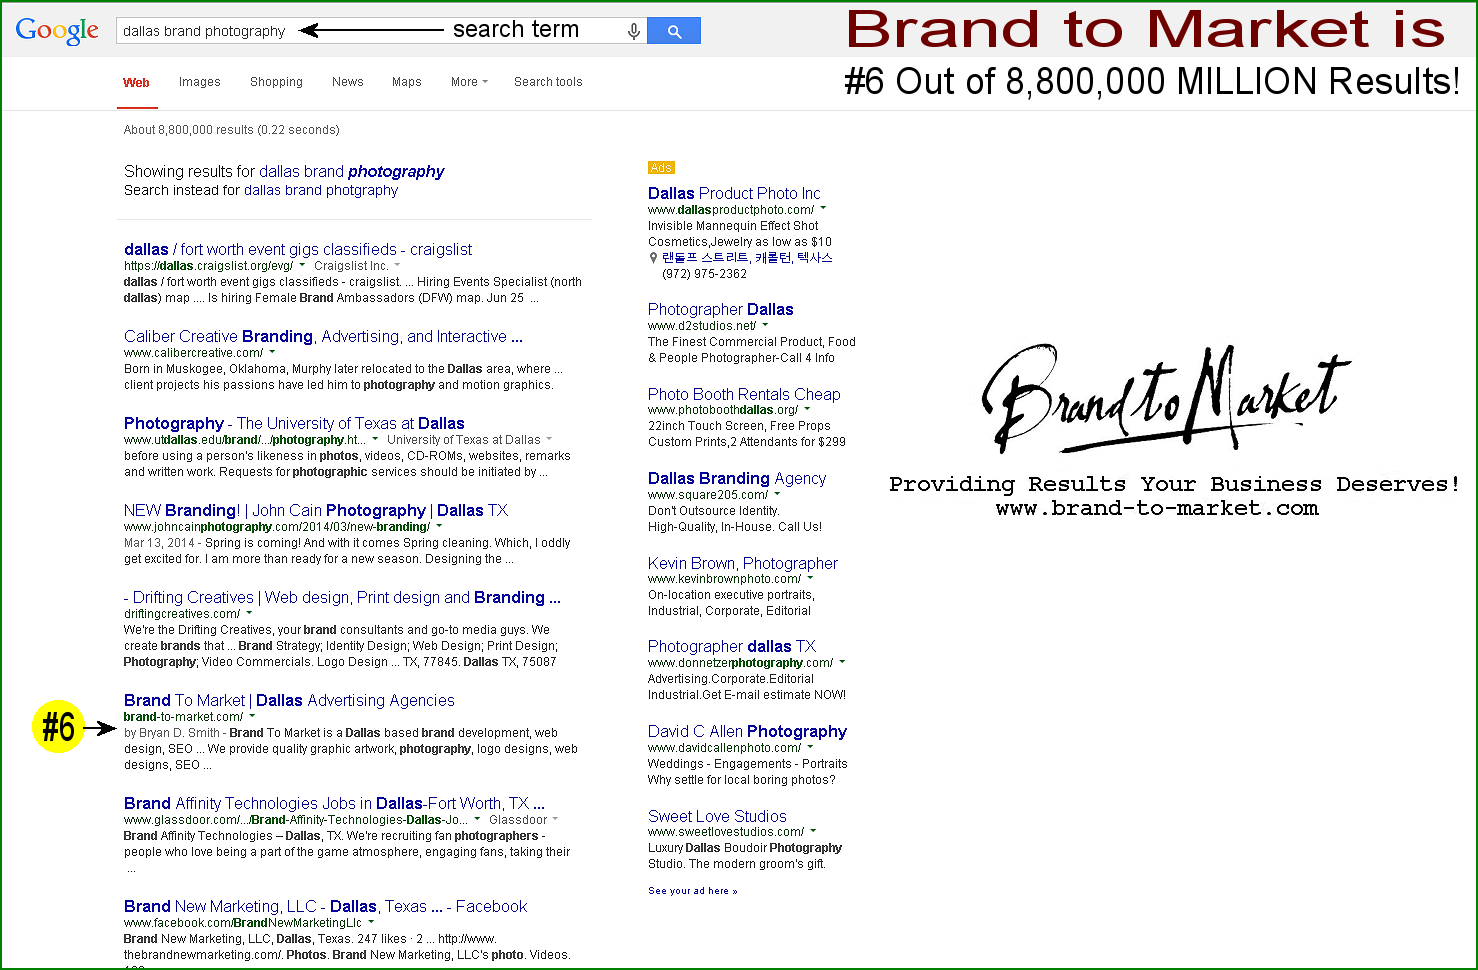 Google Results - Dallas Brand Photography